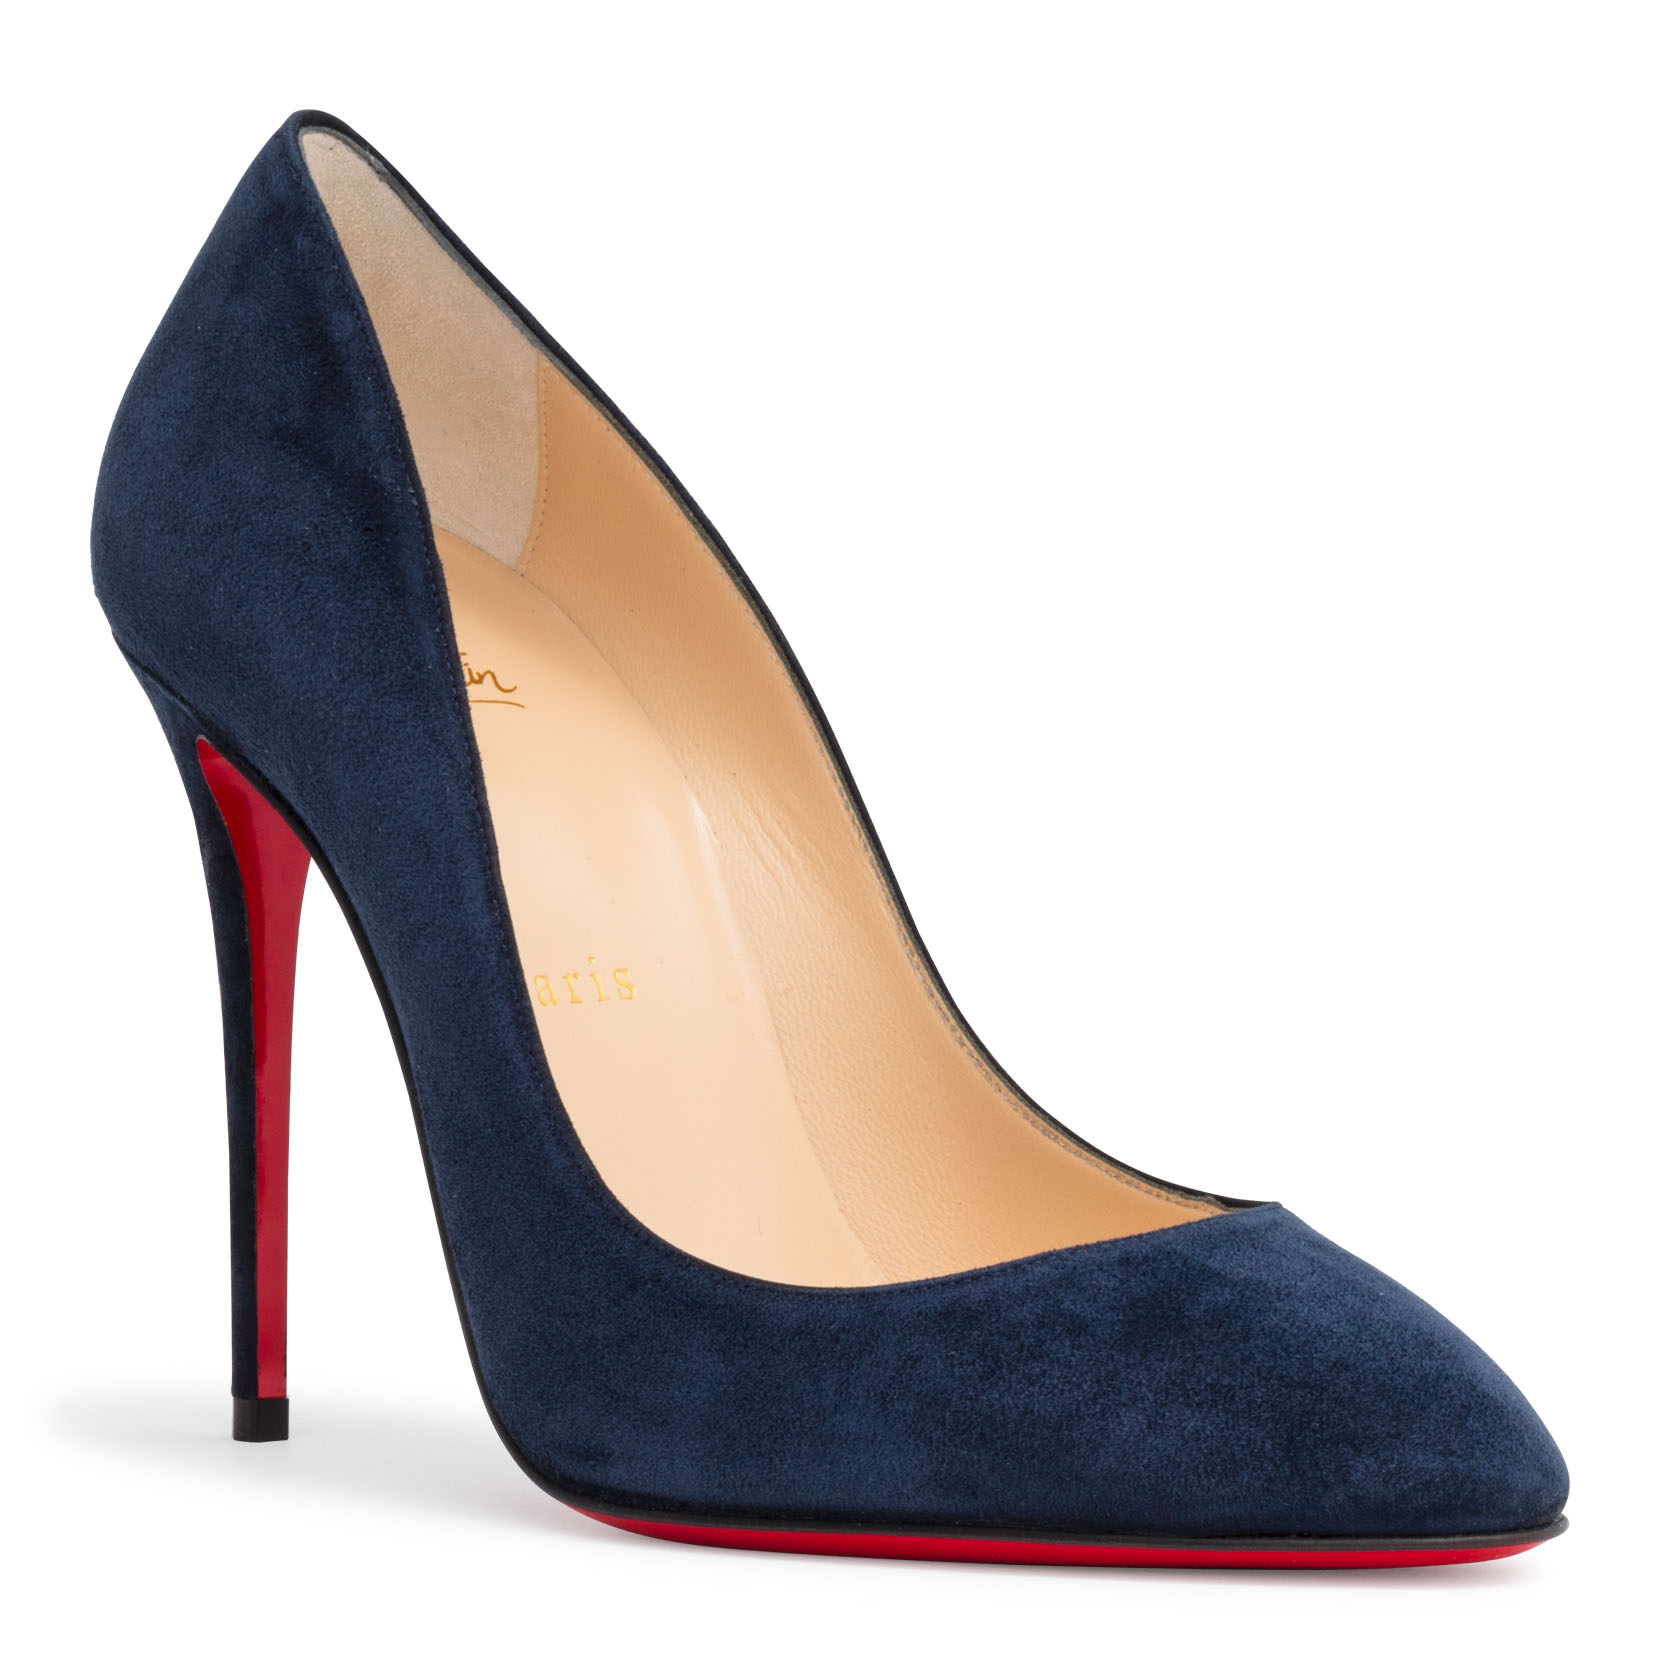 Blue suede pumps eloise 100 dark blue suede pumps, , hi-res ... EKTUGQX